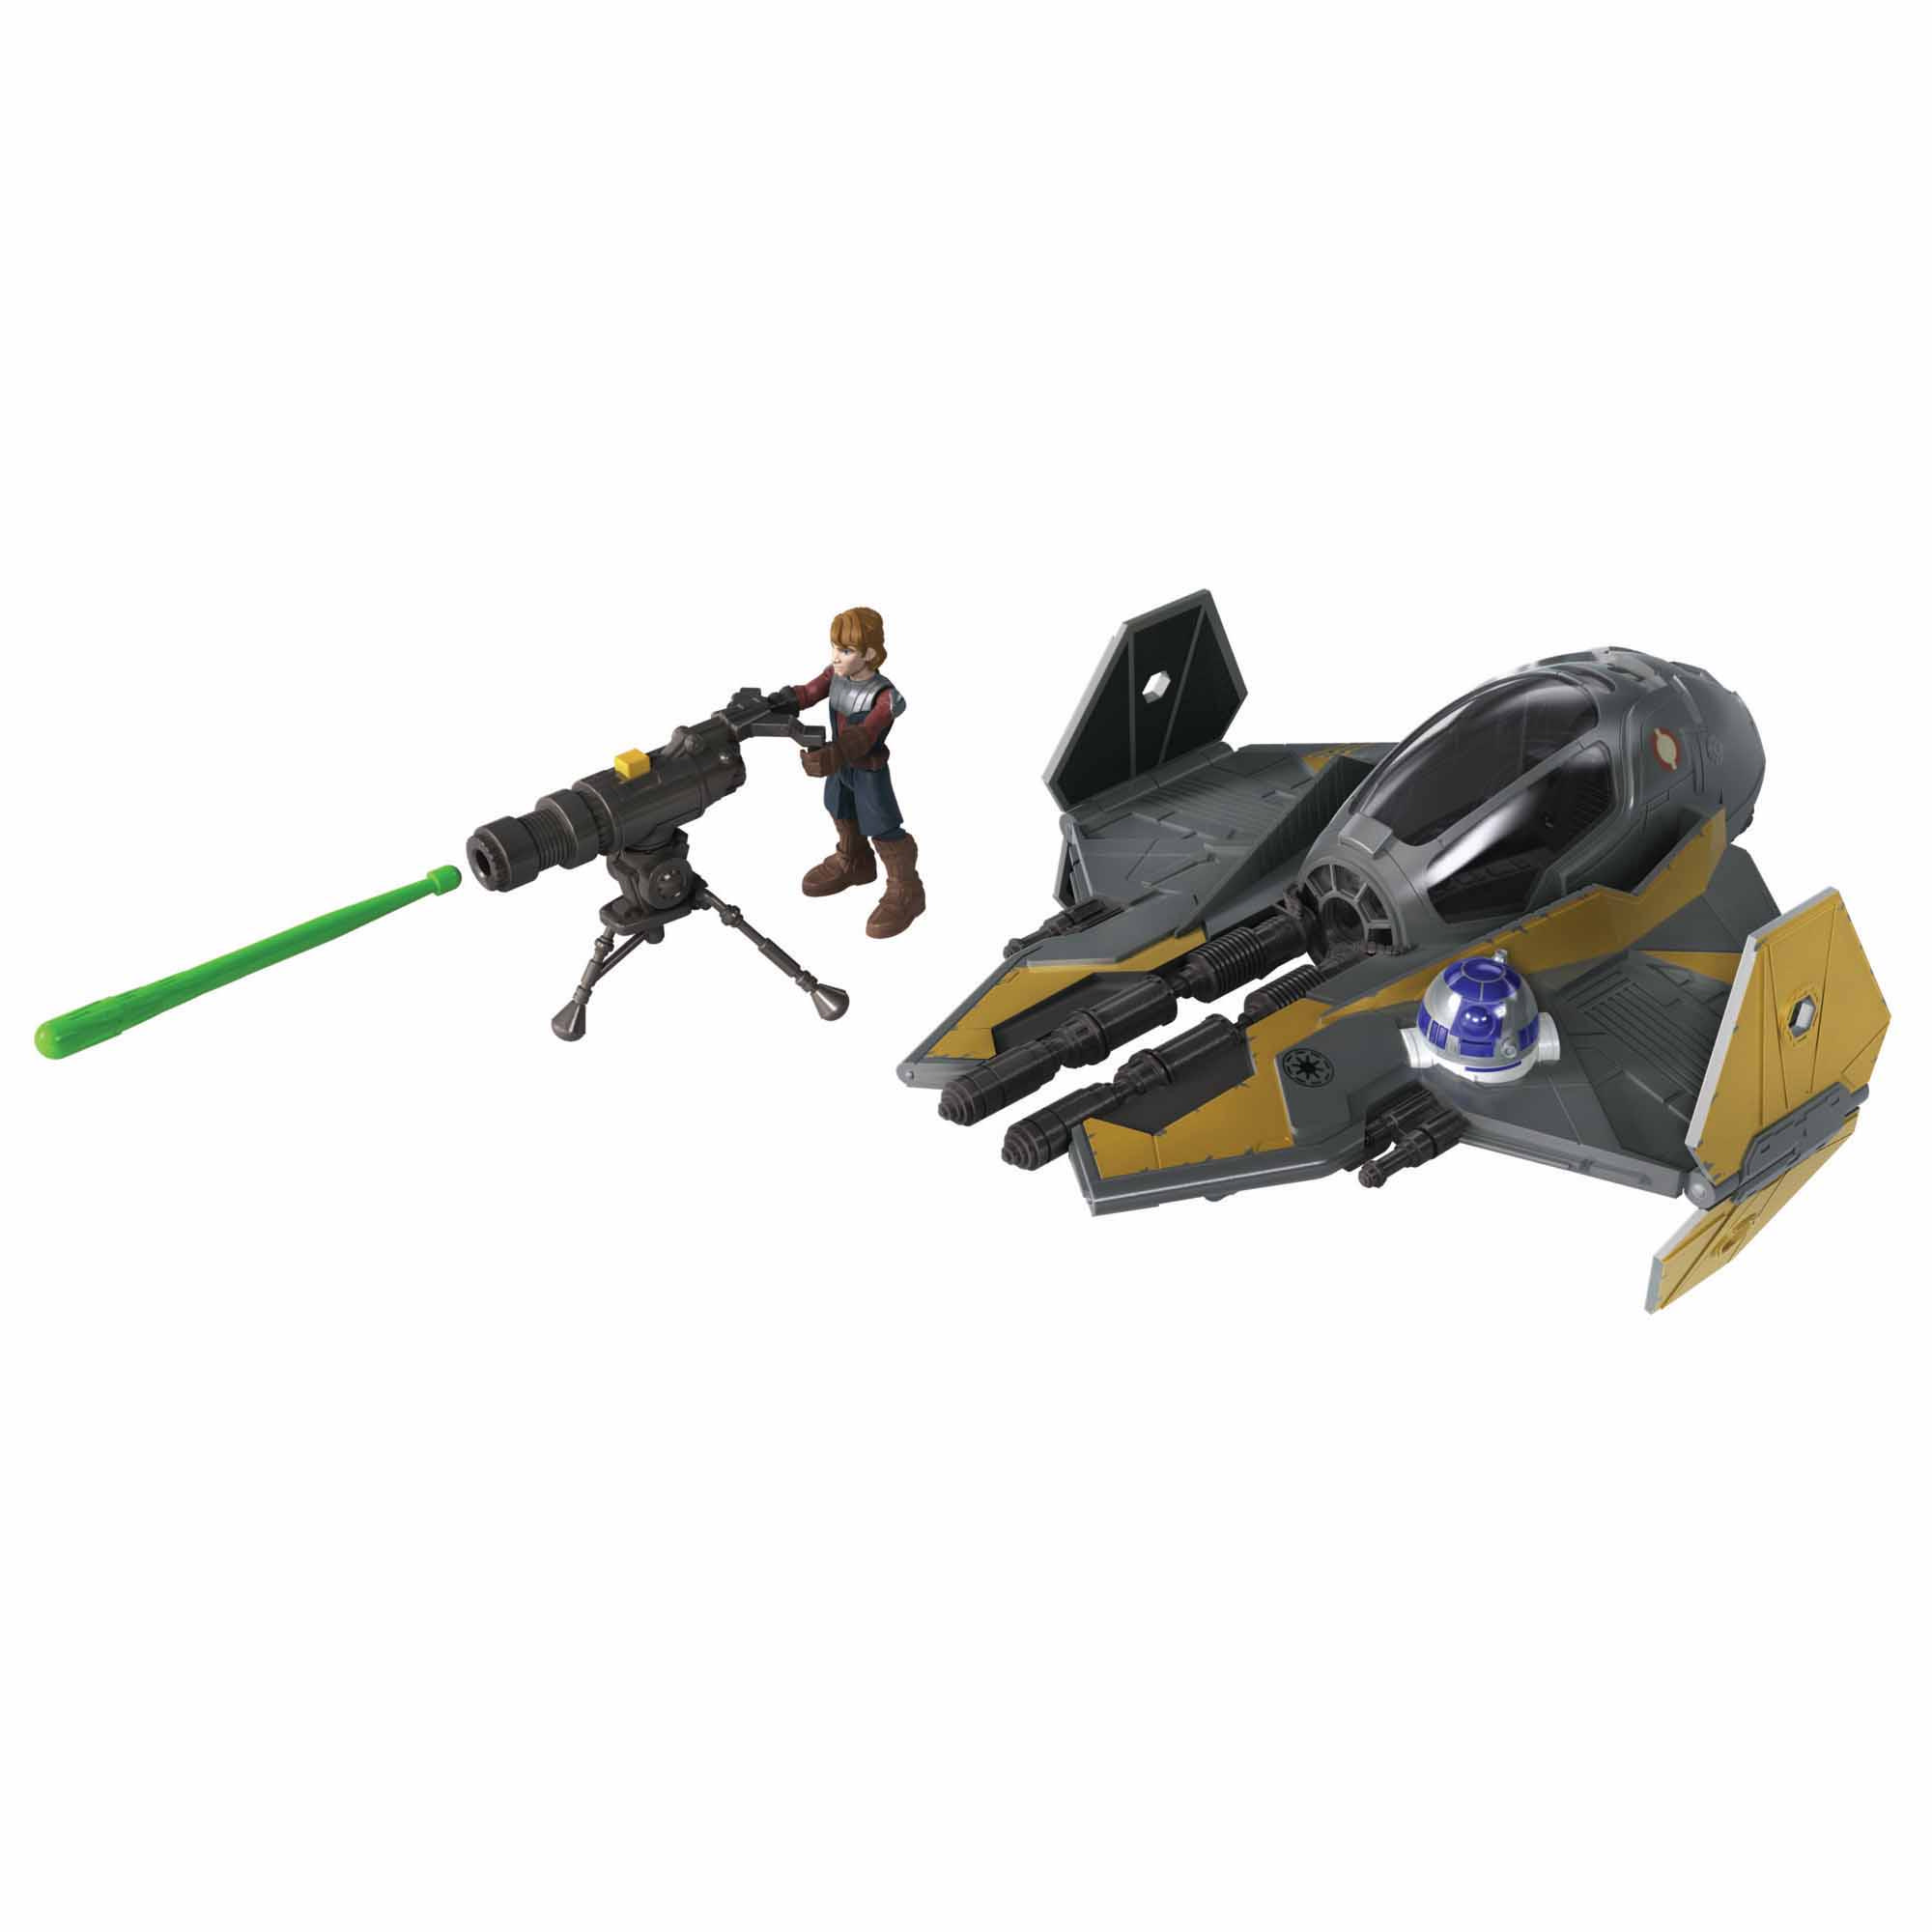 Star Wars Mission Fleet Stellar Class Anakin Skywalker Jedi Starfighter 2.5-Inch-Scale Figure and Vehicle, Ages 4 and Up